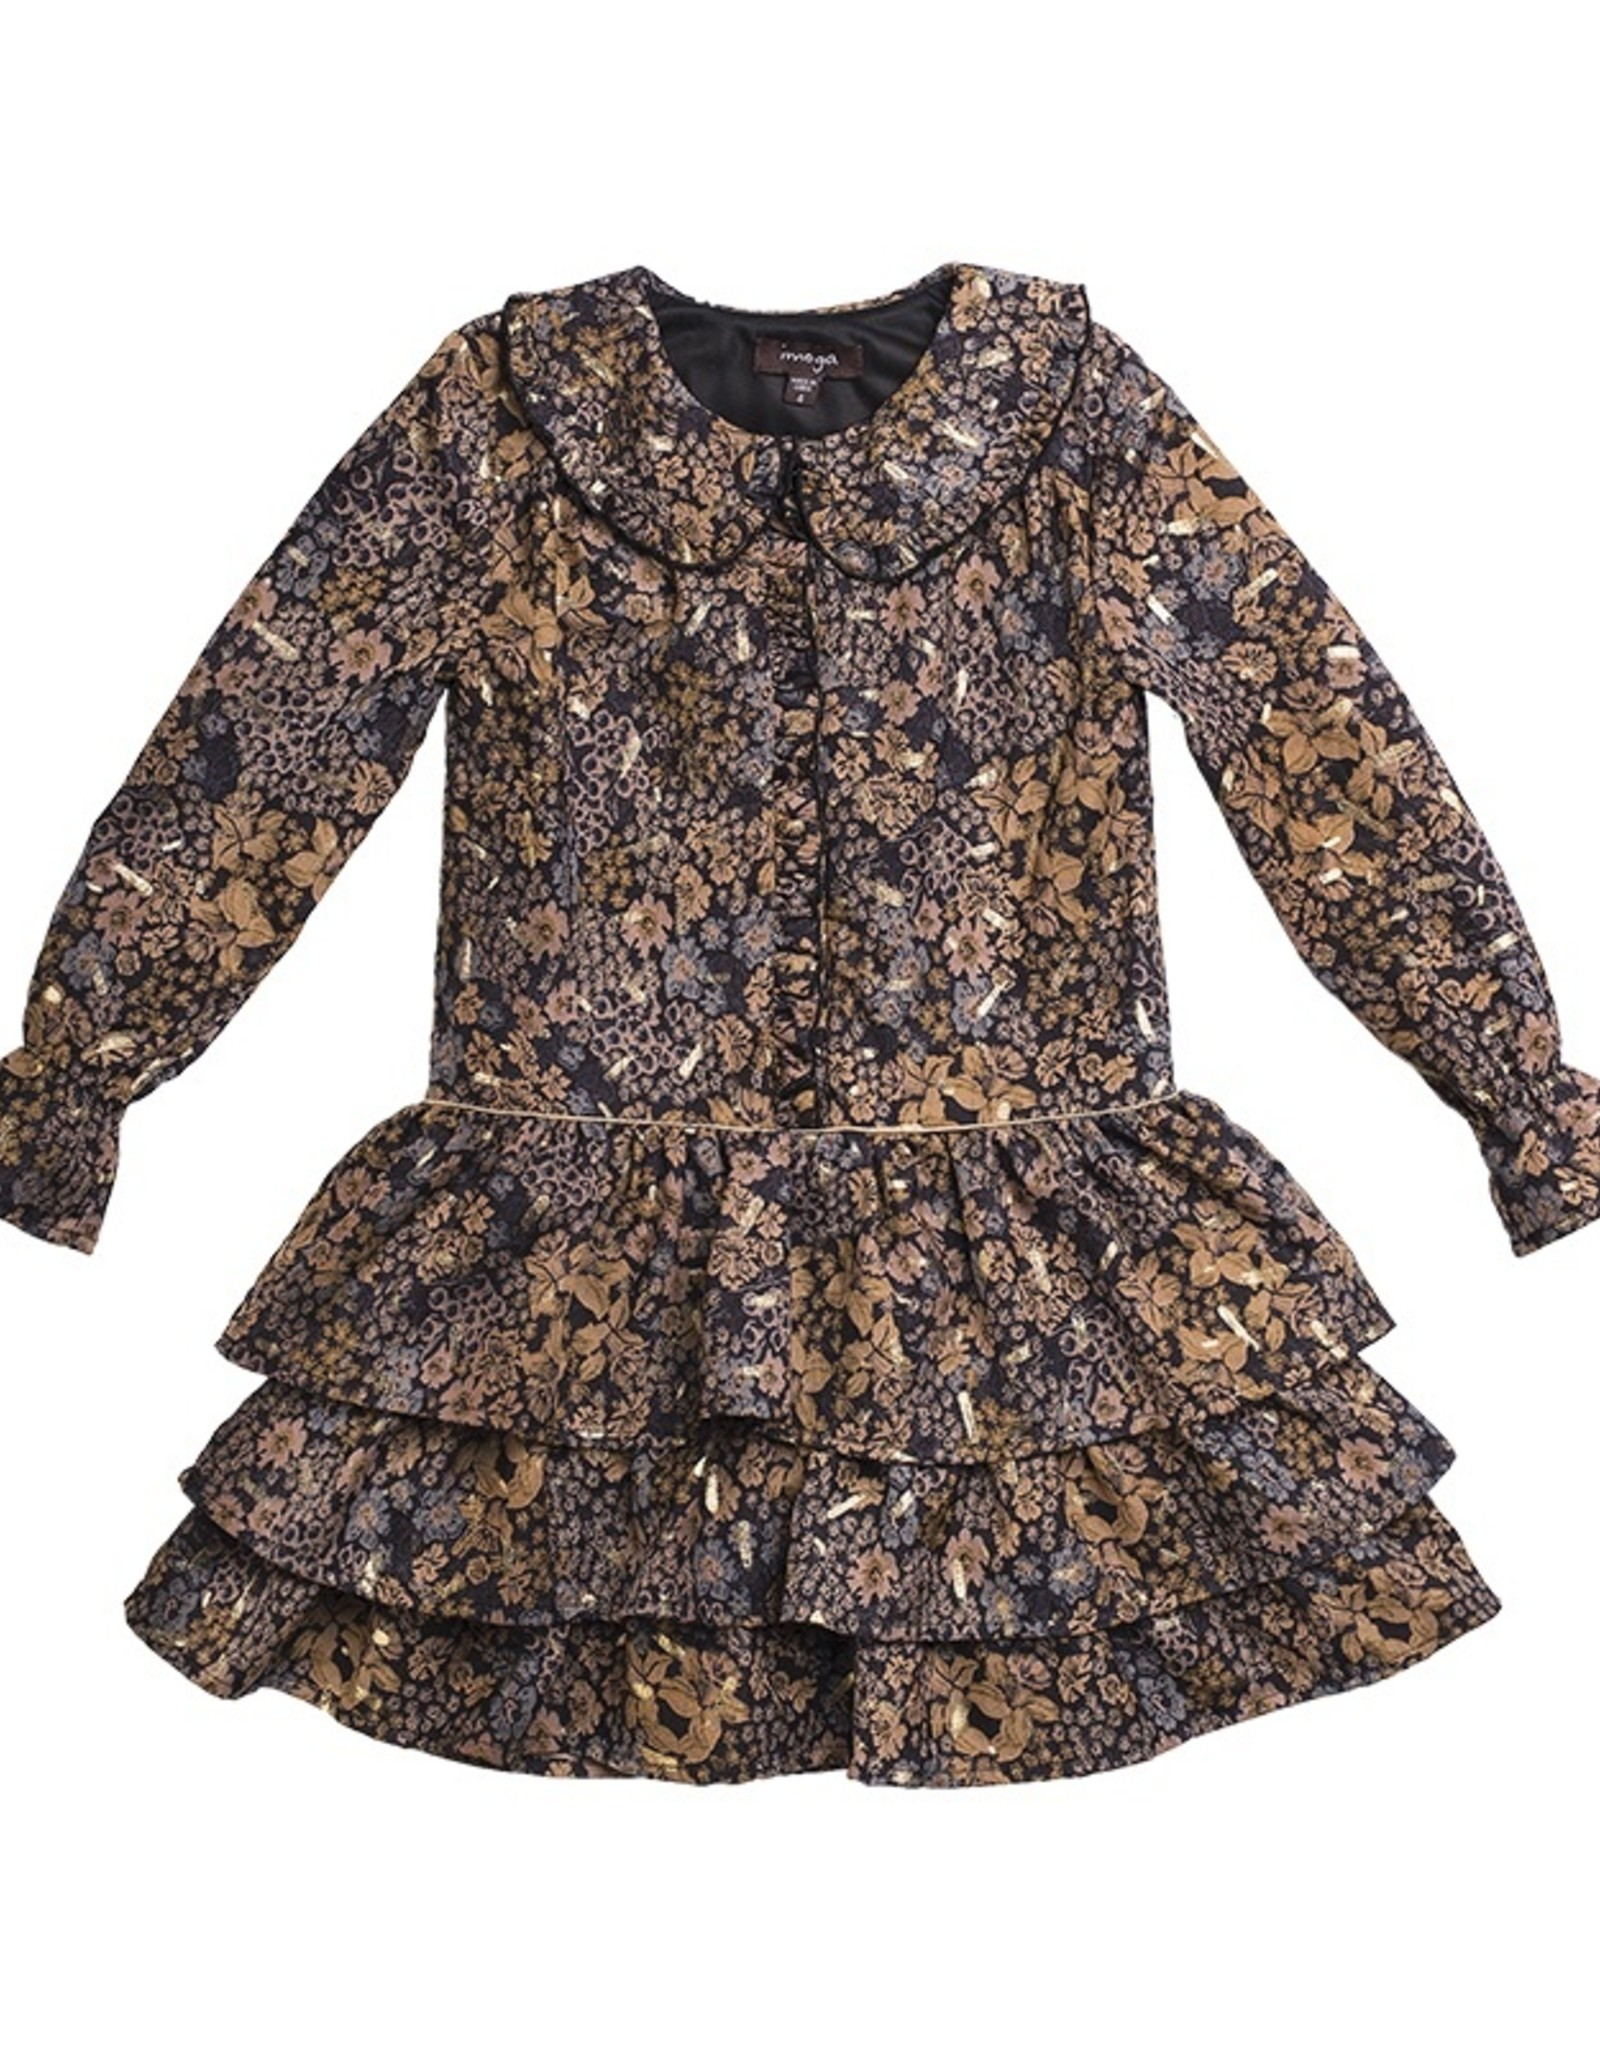 Girls Black Gold Fleur Print Dress